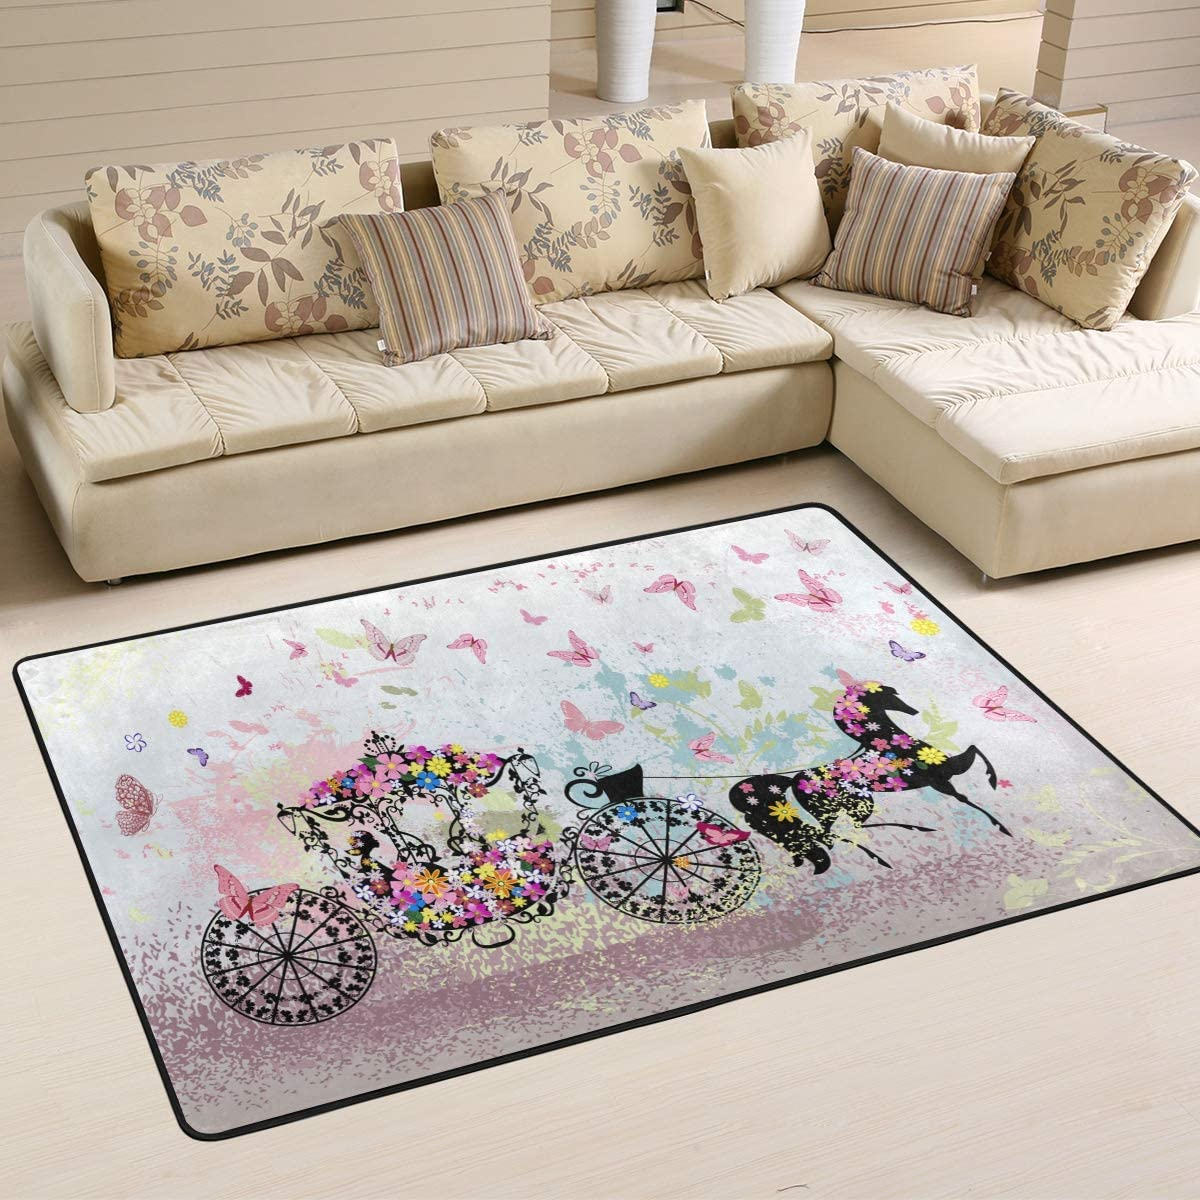 Wamika Floral Carriage Butterfly Doormat Pink Flower Animal Indoor Outdoor Rug for Kitchen Living Room Bedroom Outside Patio Inside Entry Way, 6 x 4